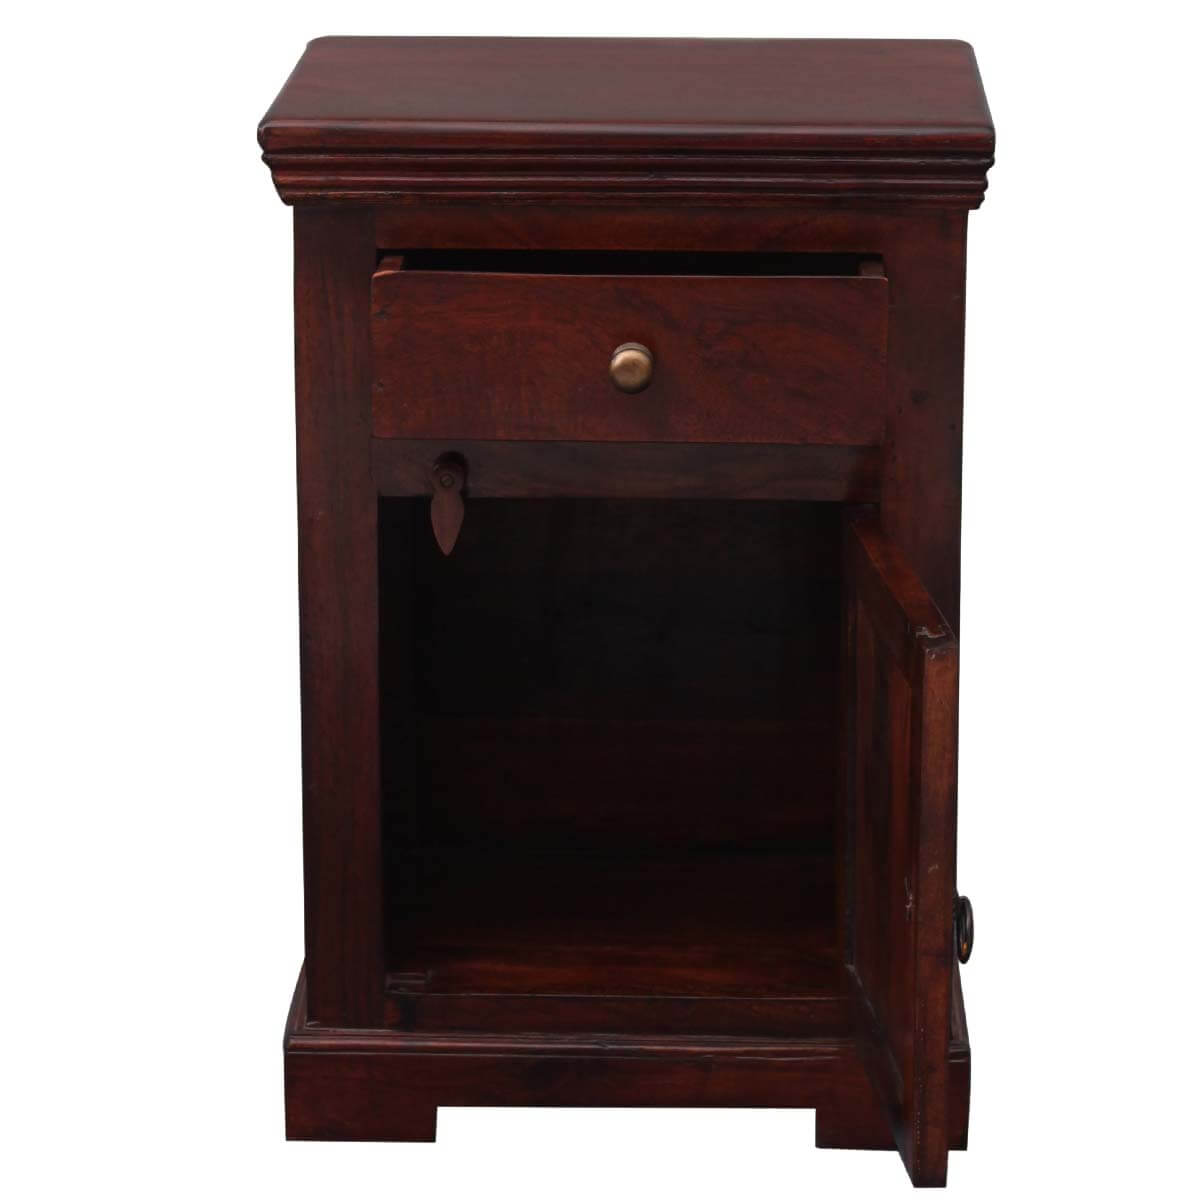 Wood Bedside Table : ... By Room Bed Room Night Stands Medium Rustic Solid Wood Bedside Table